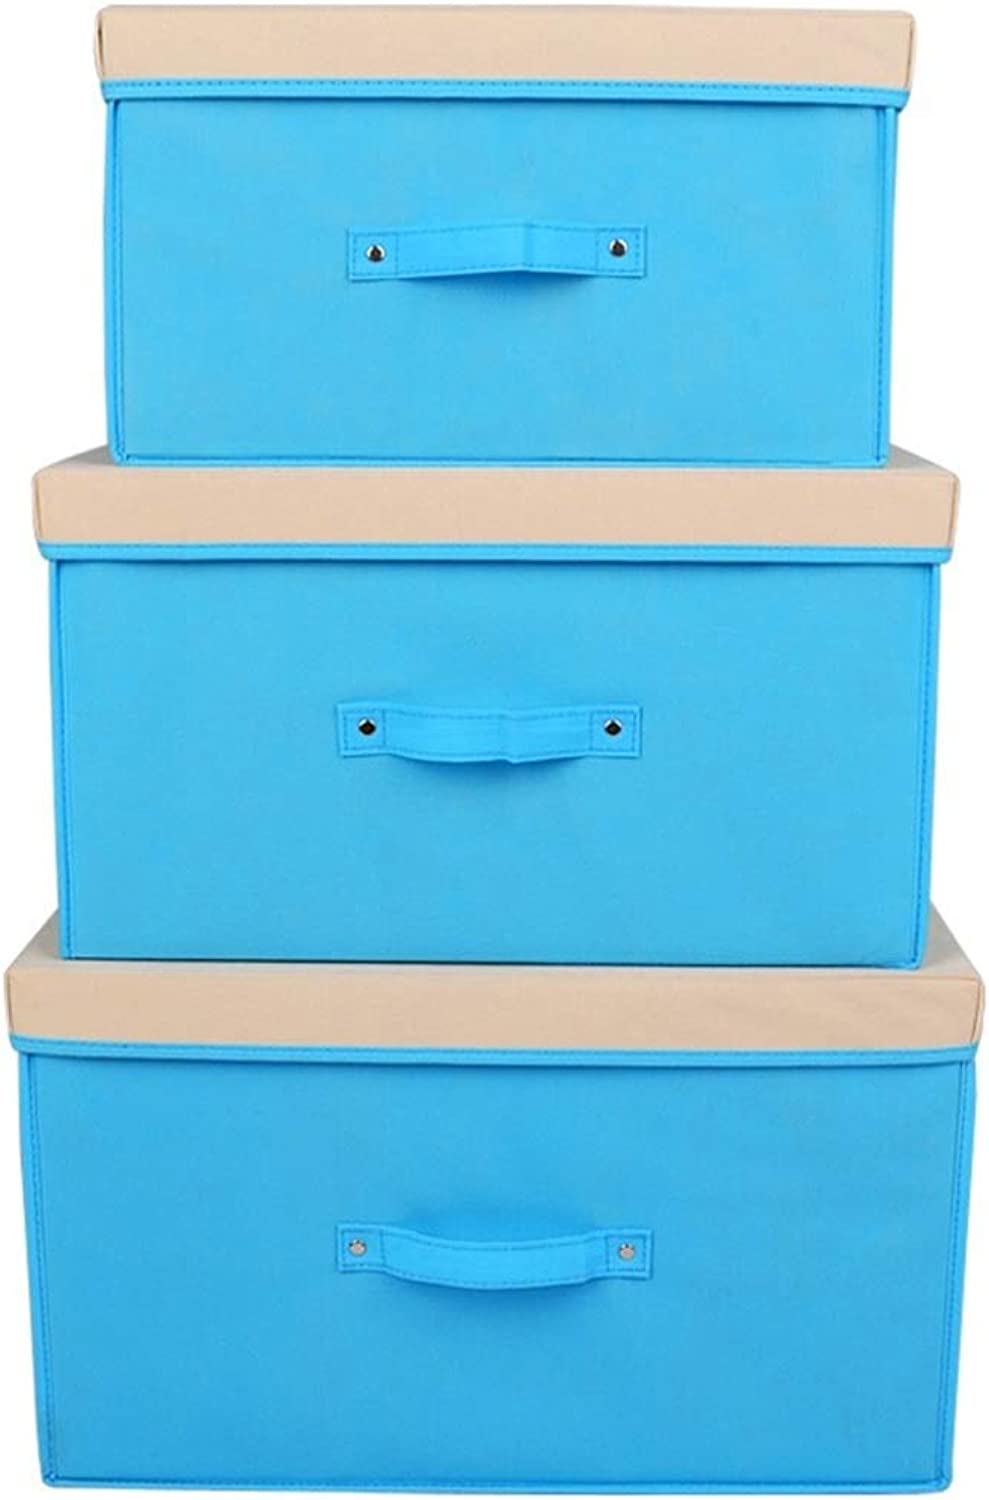 Storage Box Storage Bins Baskets Toy Box Home Containers Cubes Bin Box Gift Baskets Storage Ches-Dot Simple Non-Woven Folding Large Capacity JINRONG (color   bluee, Size   30  40  25cm)